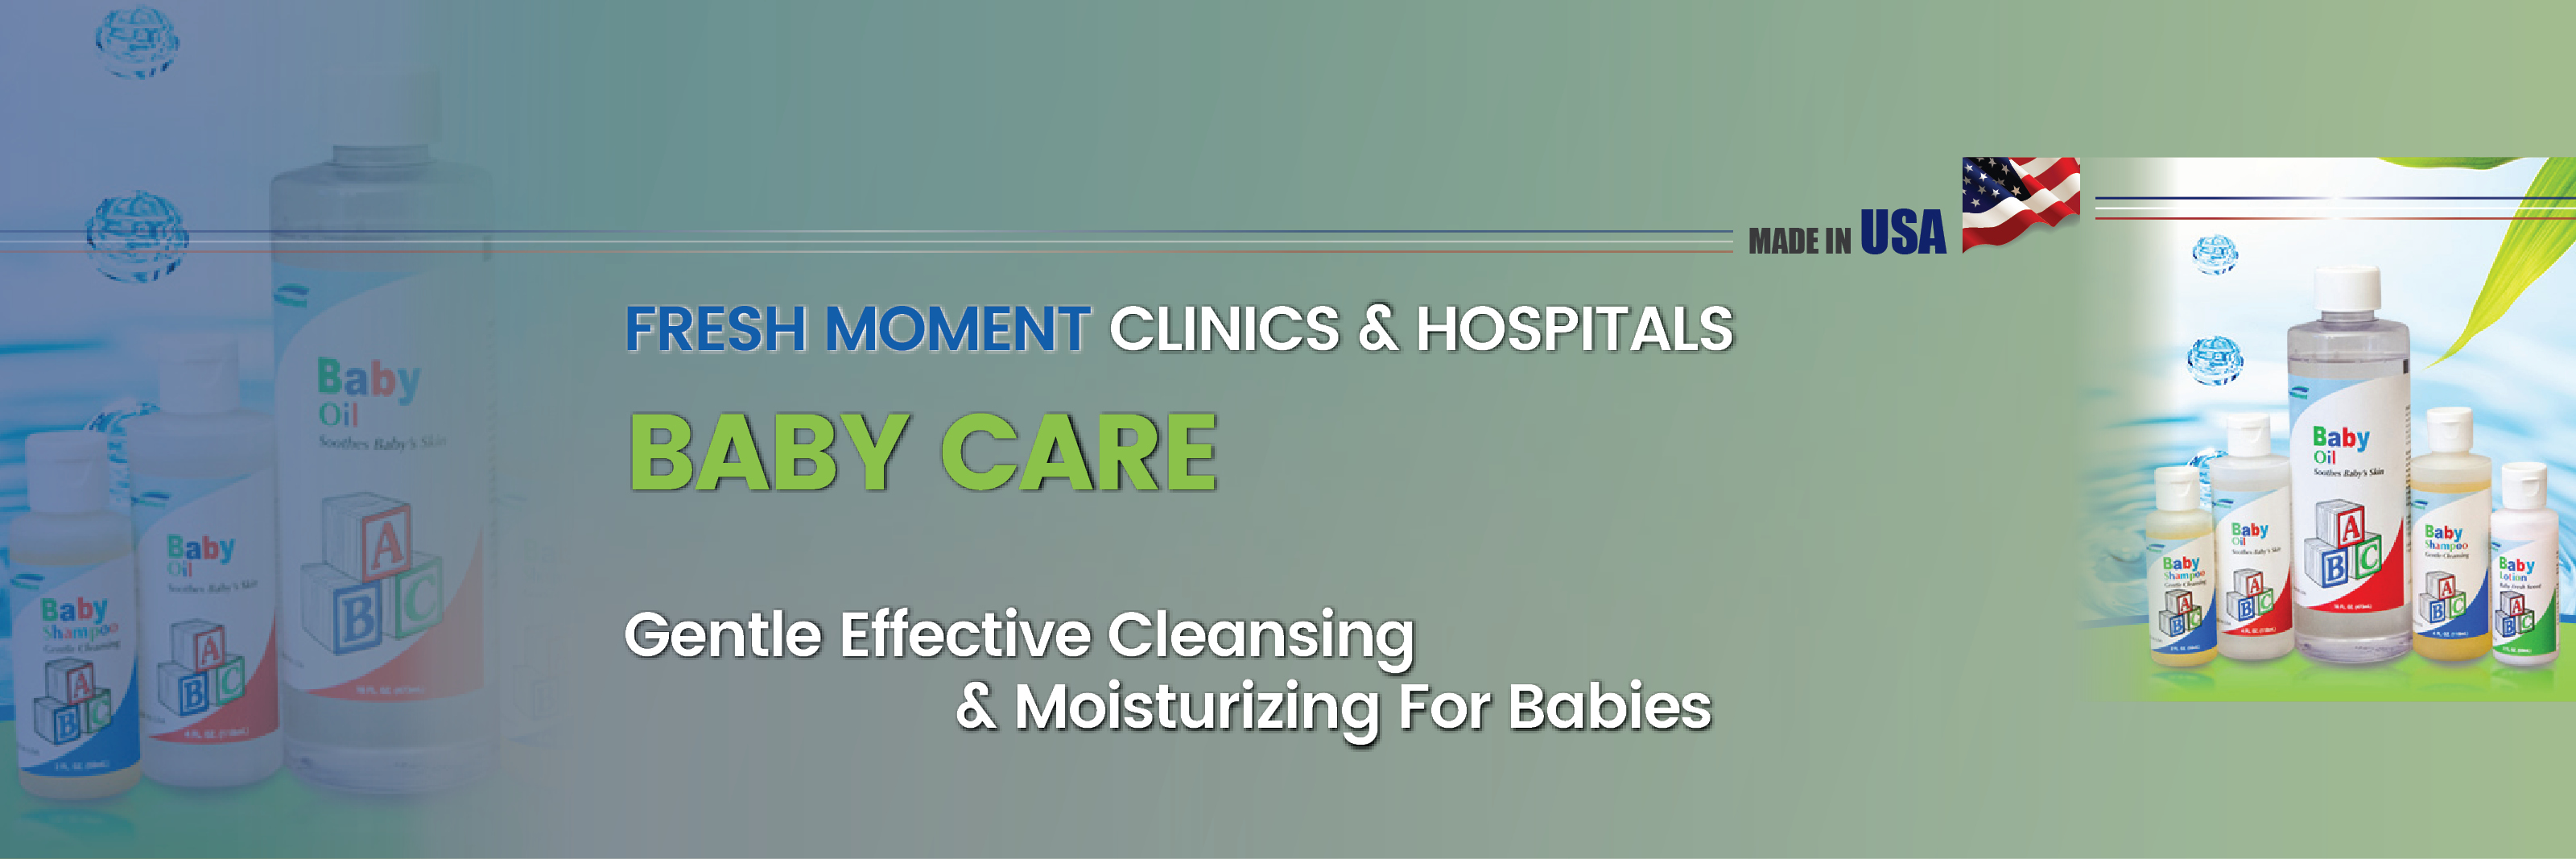 Fresh Moment Baby Care